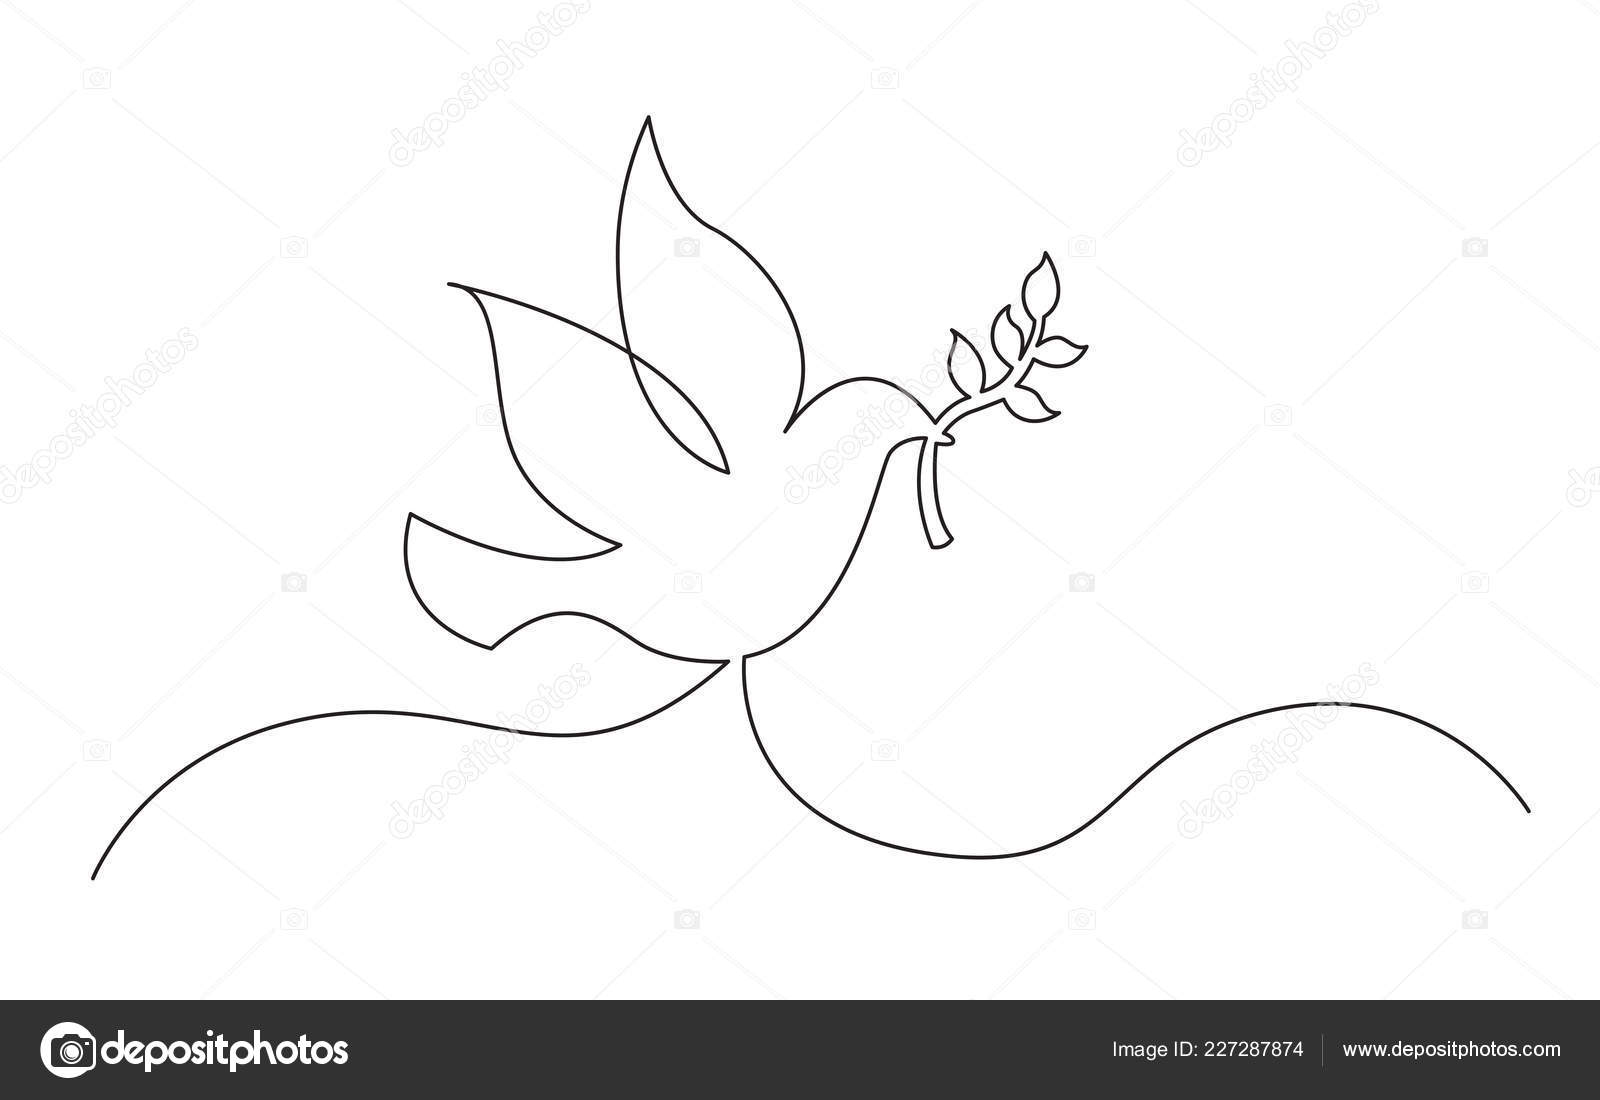 Drawing Of Dove With Olive Branch Continuous Line Concept Sketch Drawing Dove Olive Branch Peace Symbol Stock Vector C One Line Man 227287874